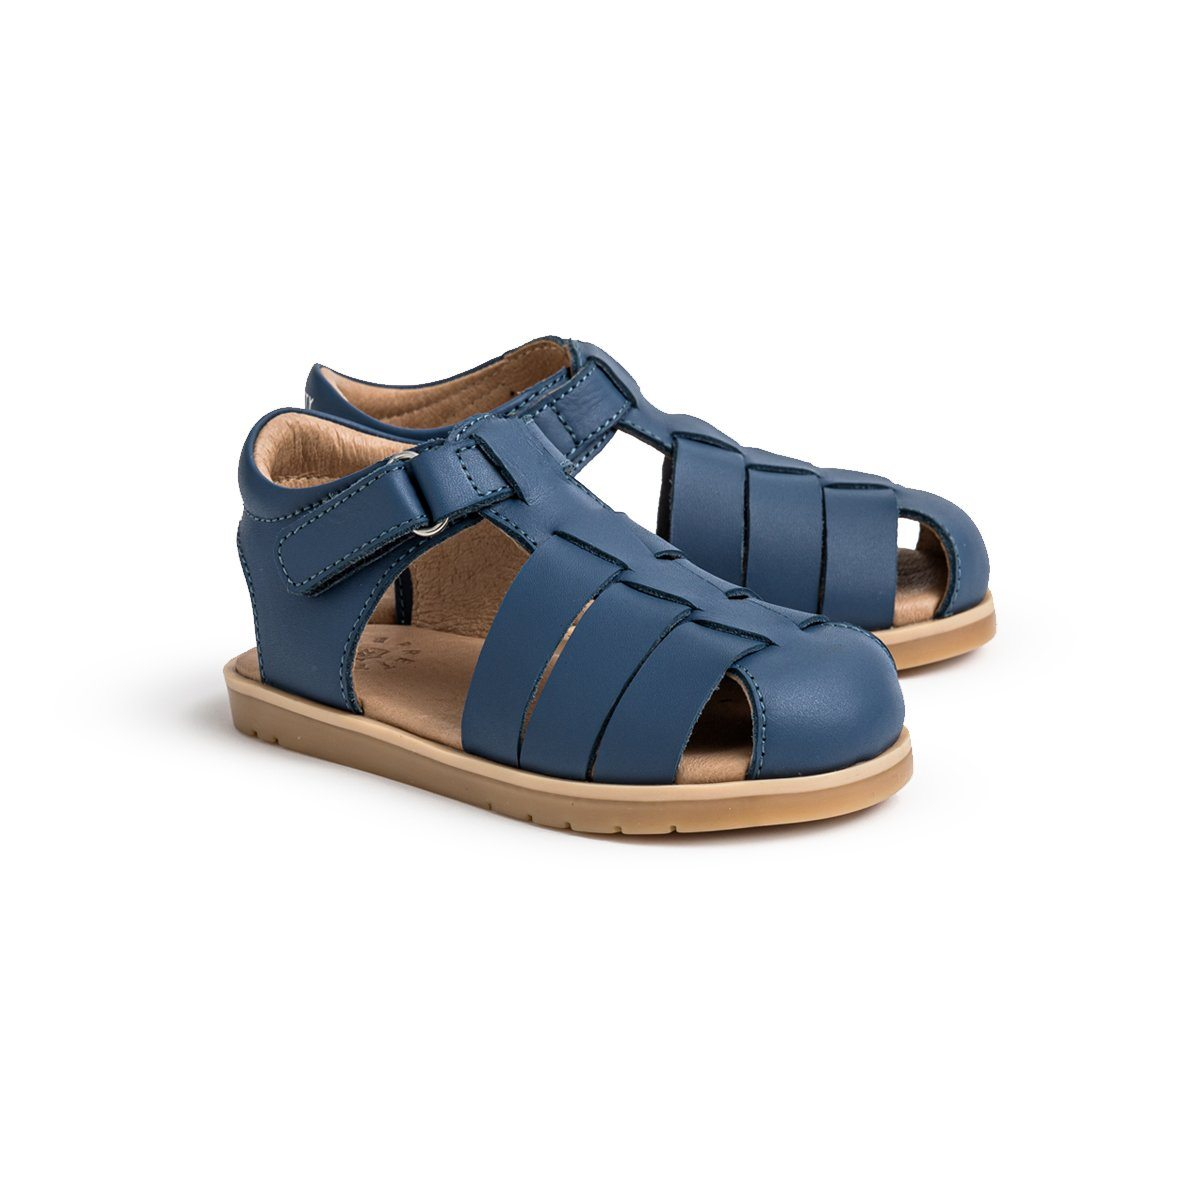 Rocco Sandals (Denim)